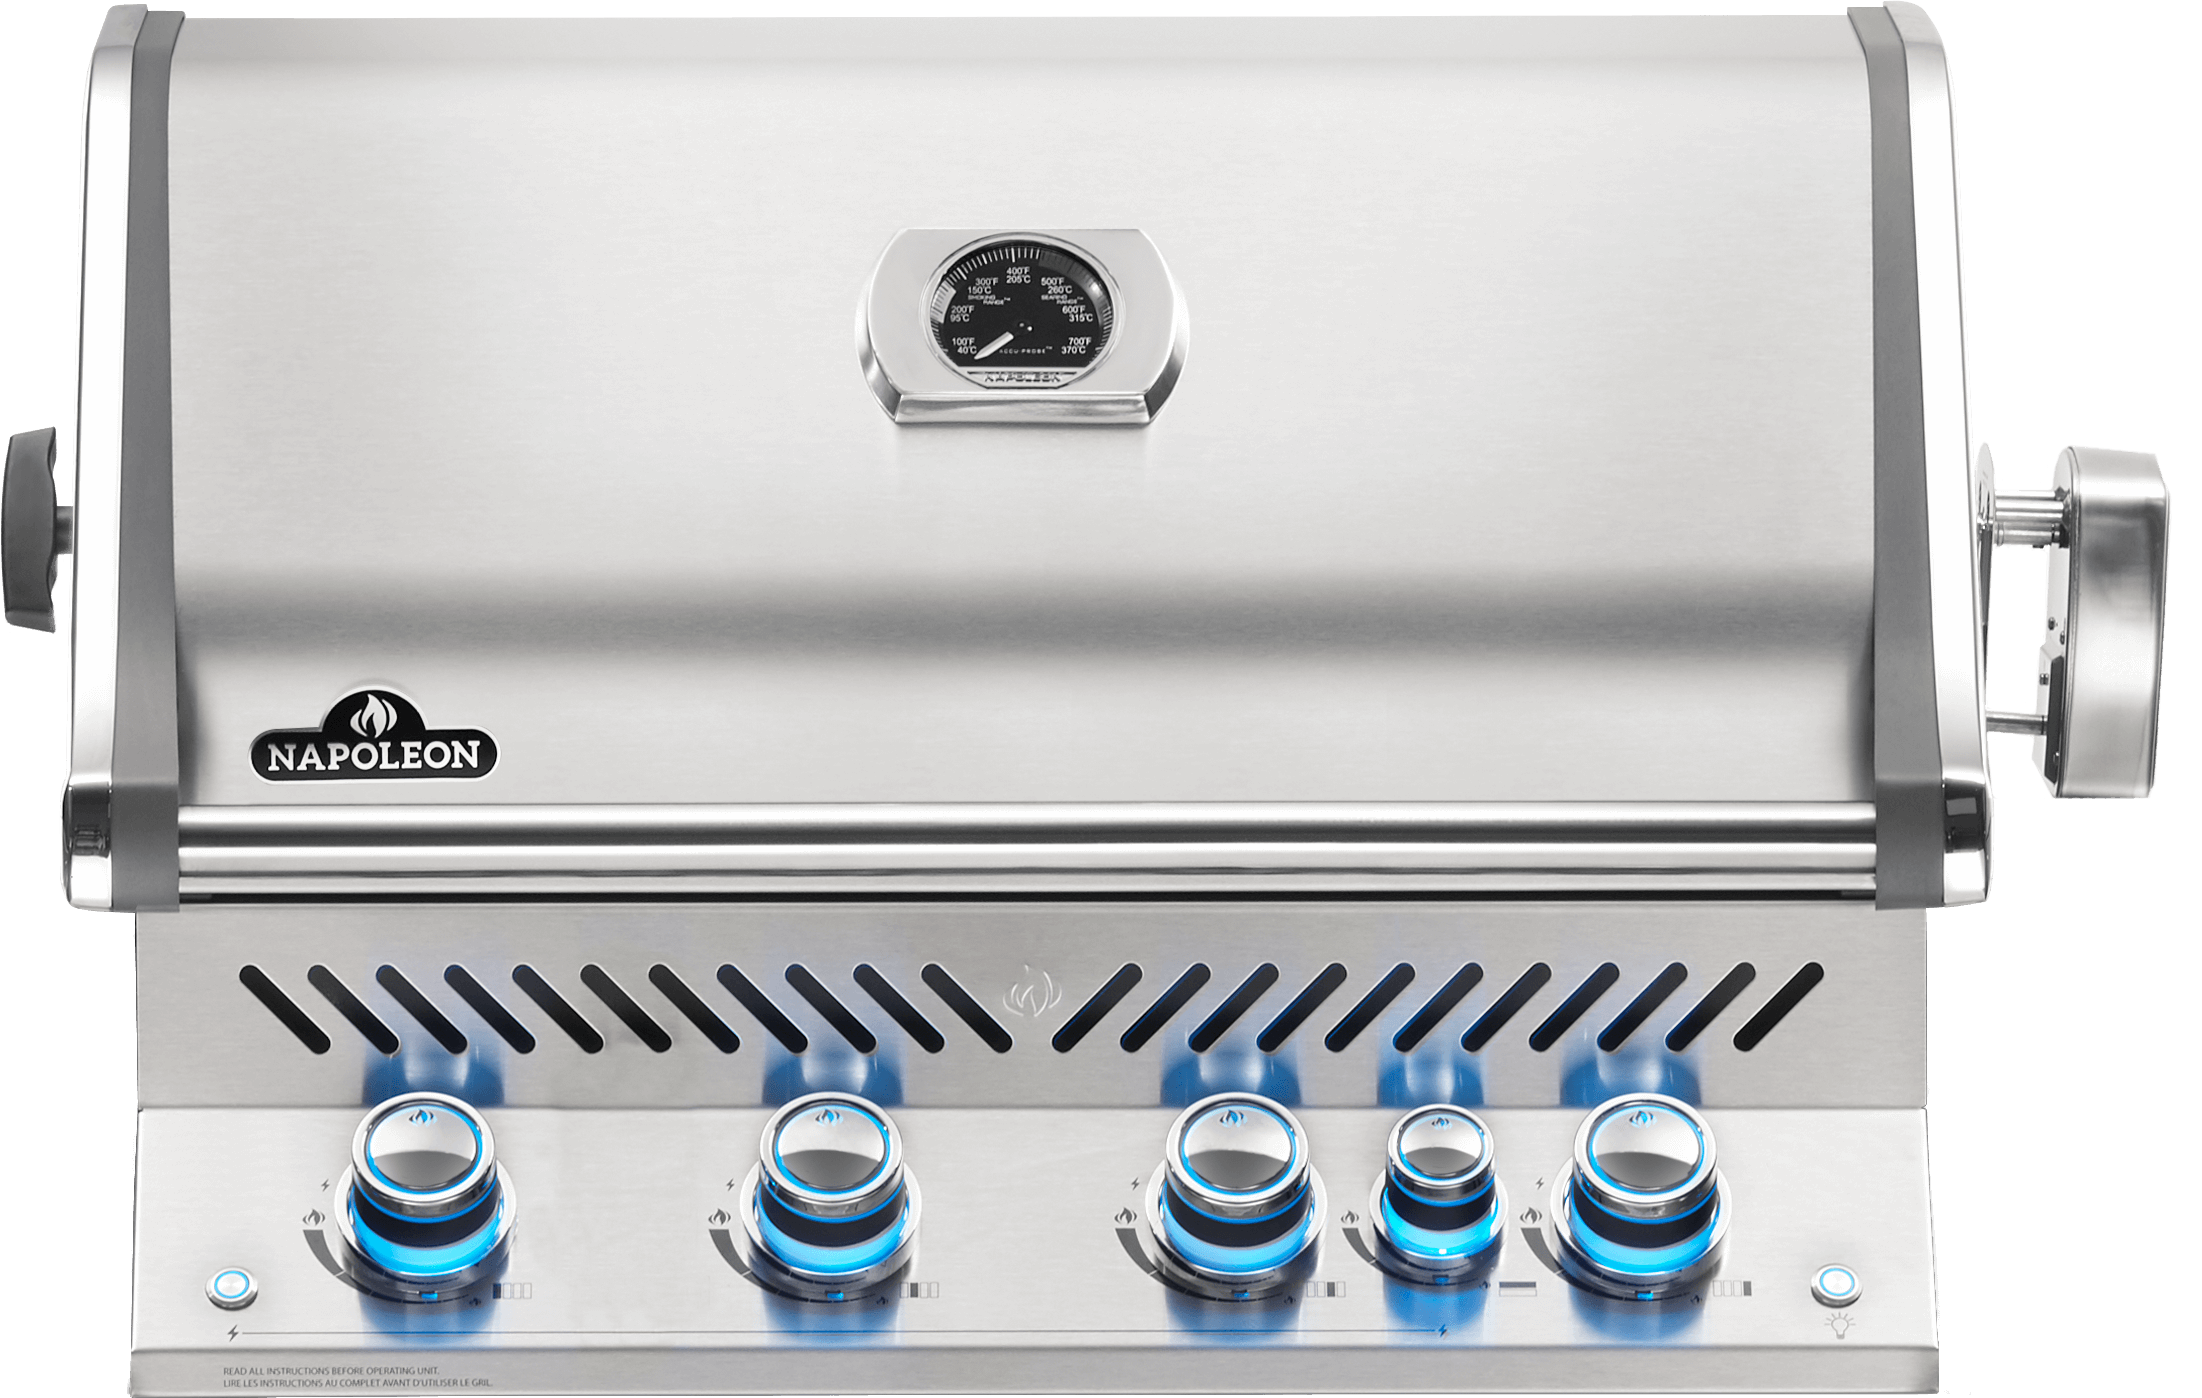 Model: BIPRO500RBNSS-3 | Napoleon Built-in Prestige PRO™ 500 Natural Gas Grill Head with Infrared Rear Burner, Stainless Steel